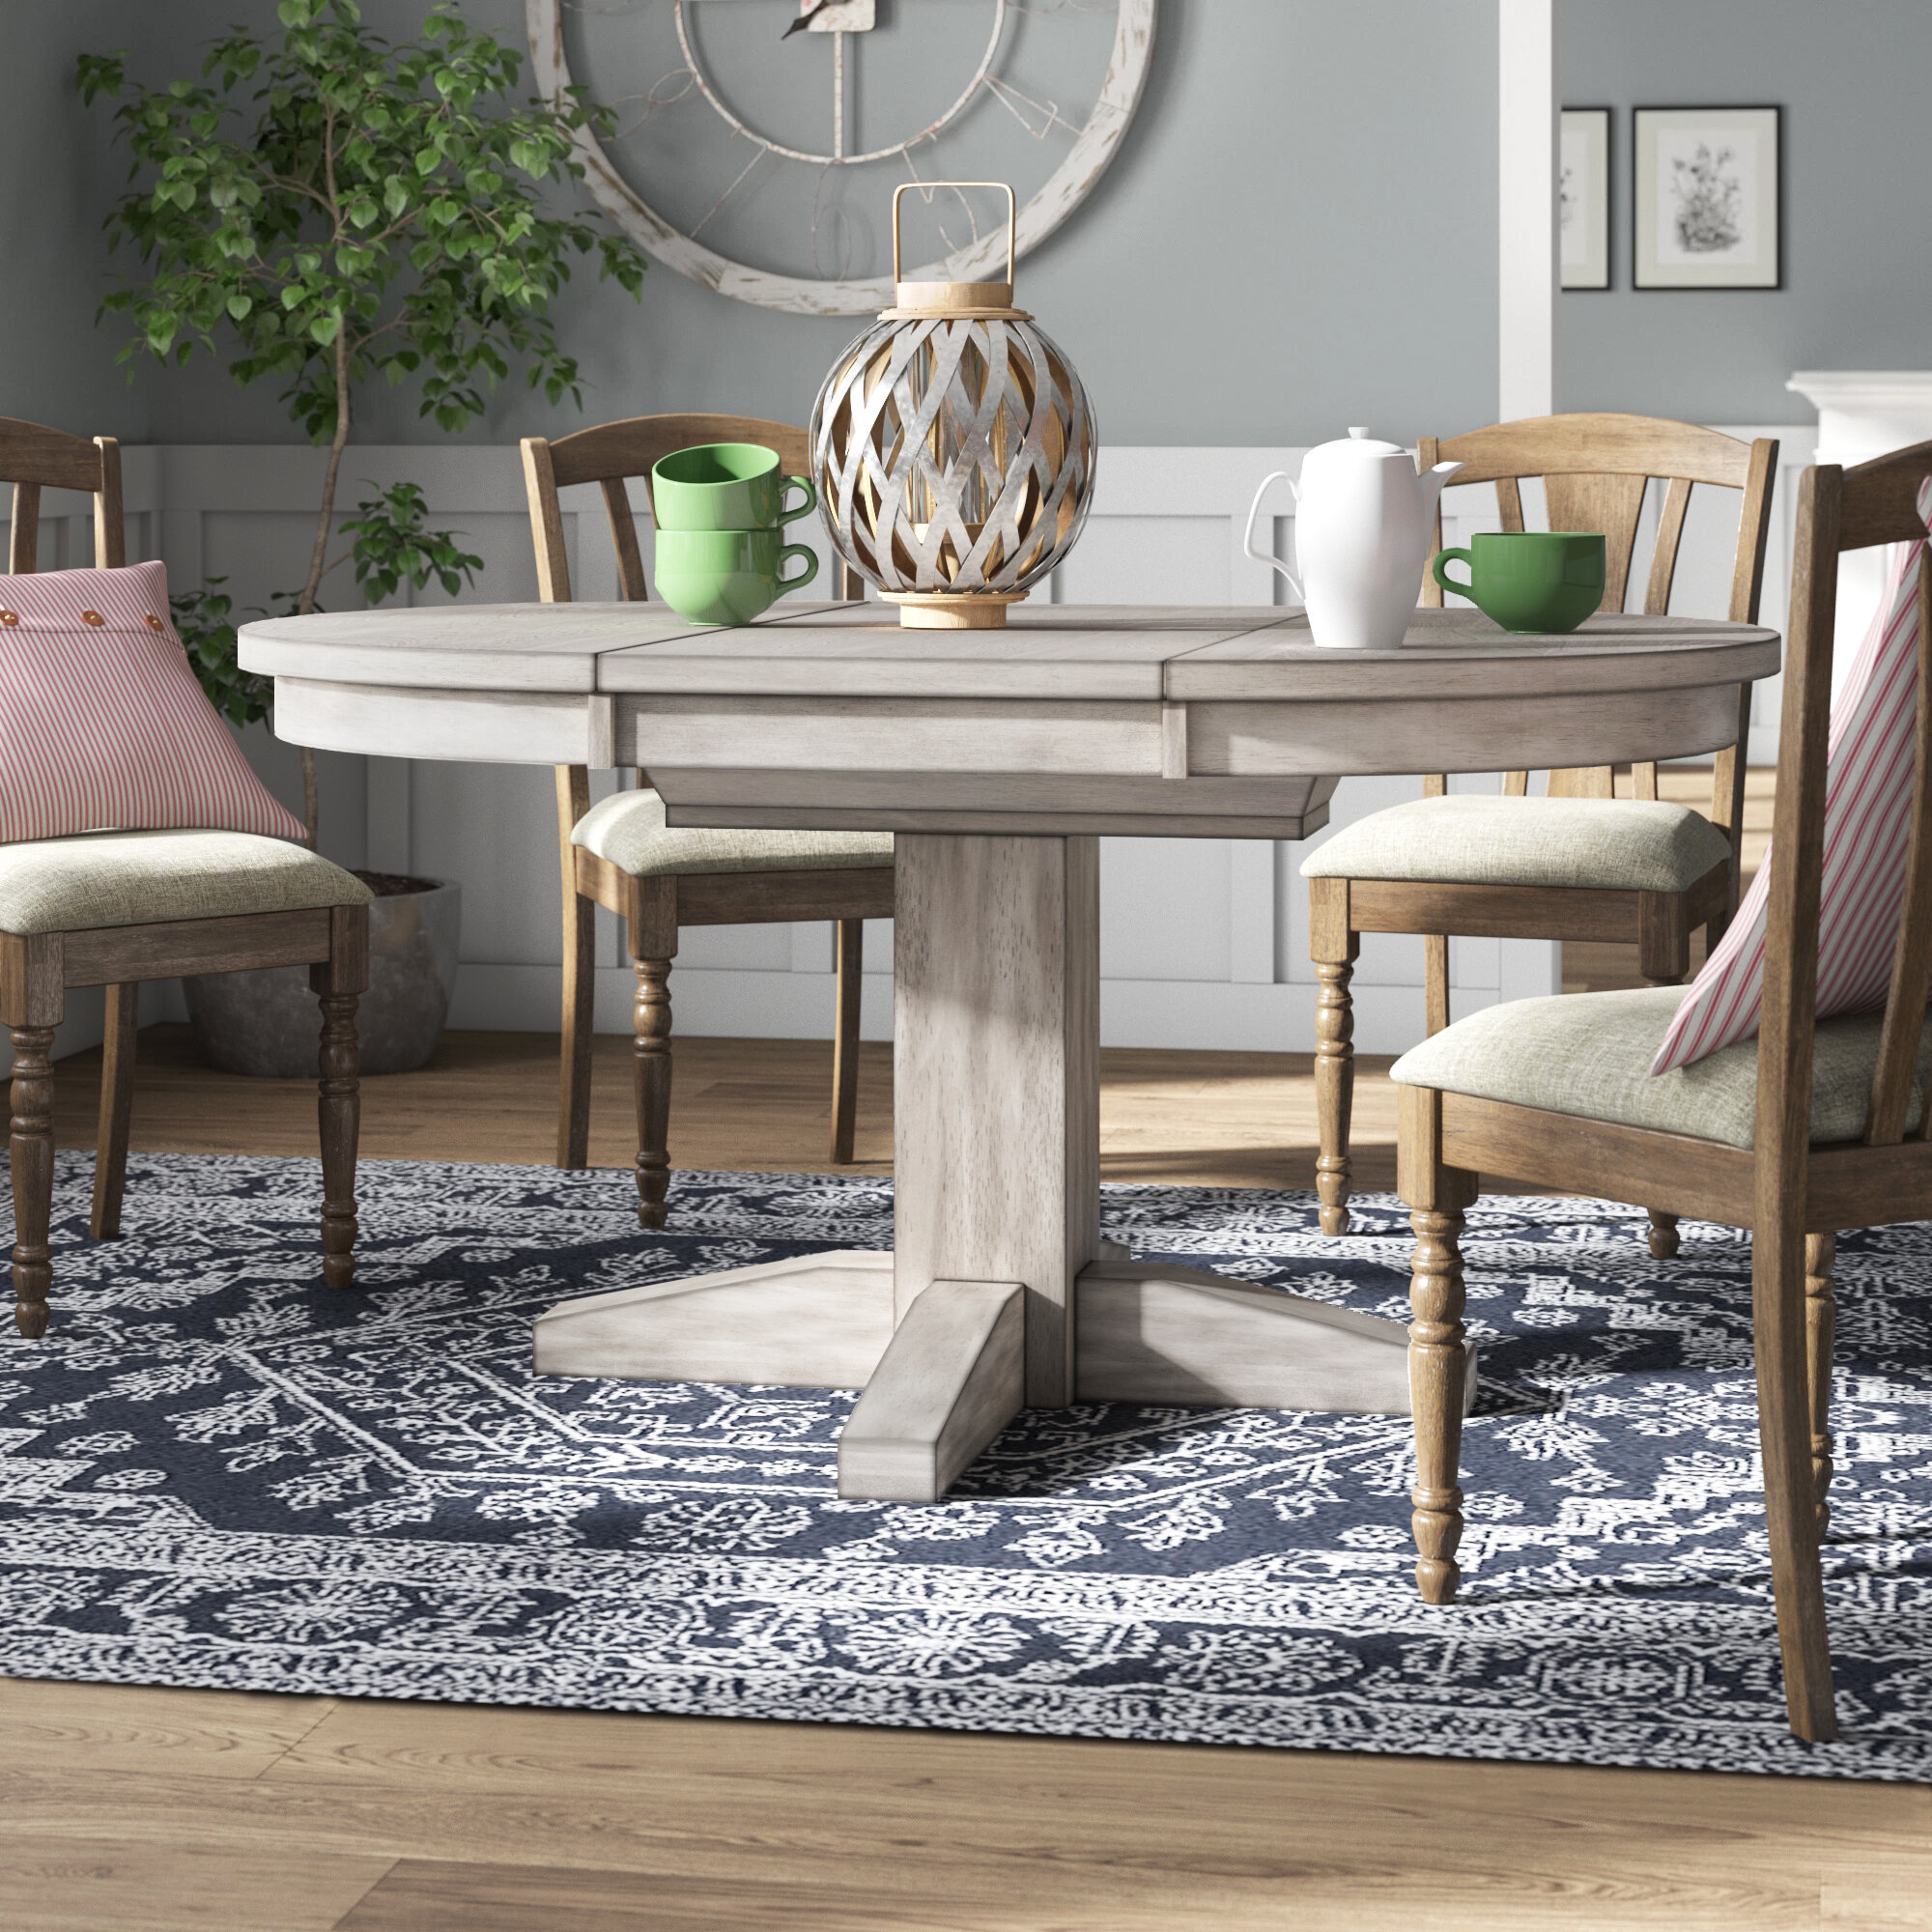 Butterfly Leaf Round Kitchen & Dining Tables You'll Love in 9 ...